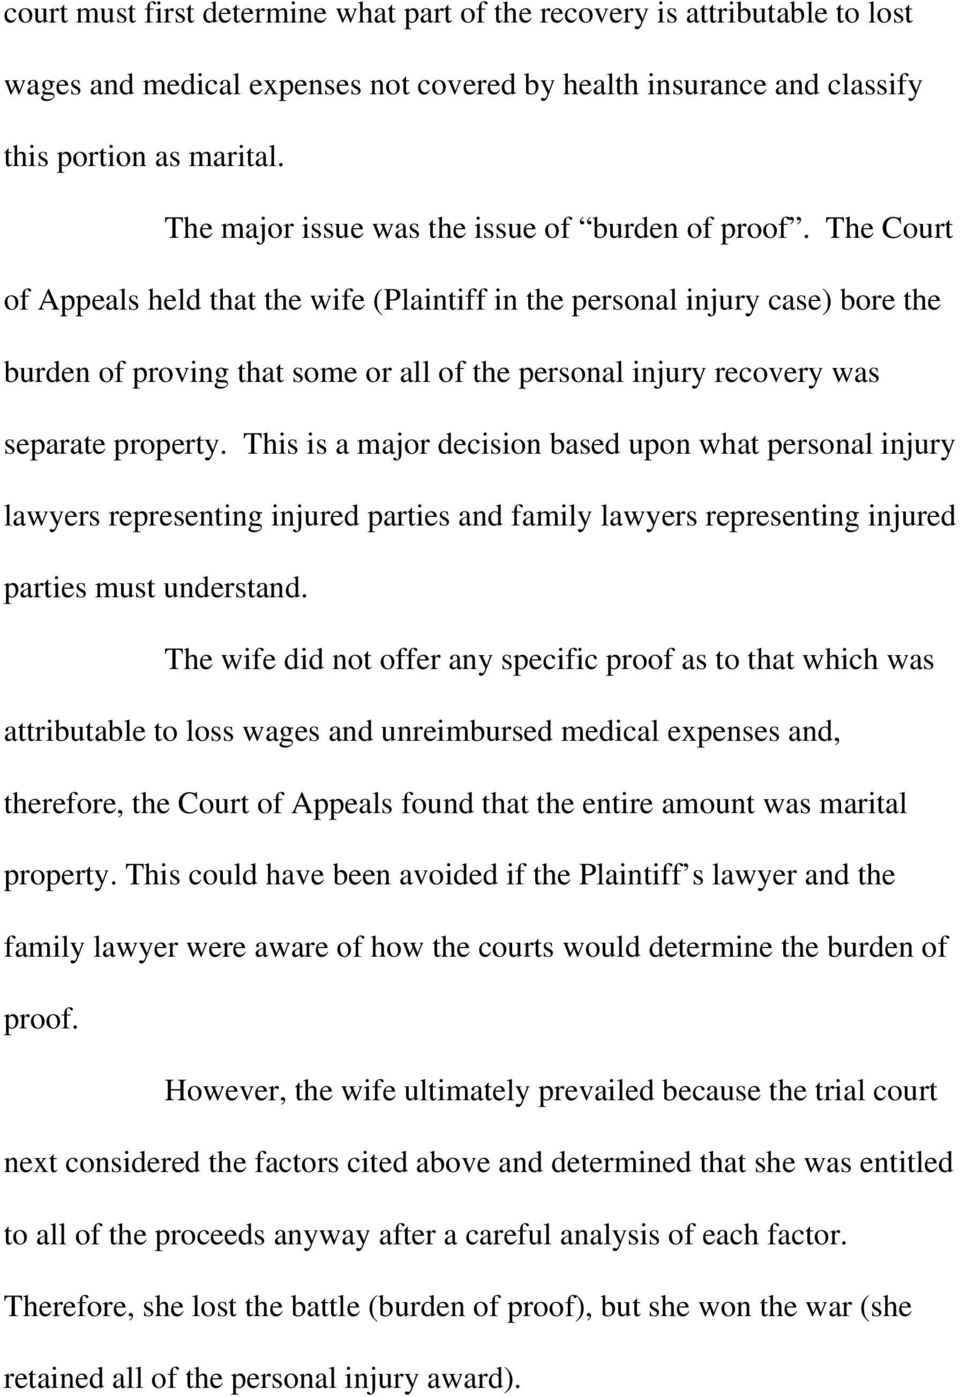 The Court of Appeals held that the wife (Plaintiff in the personal injury case) bore the burden of proving that some or all of the personal injury recovery was separate property.